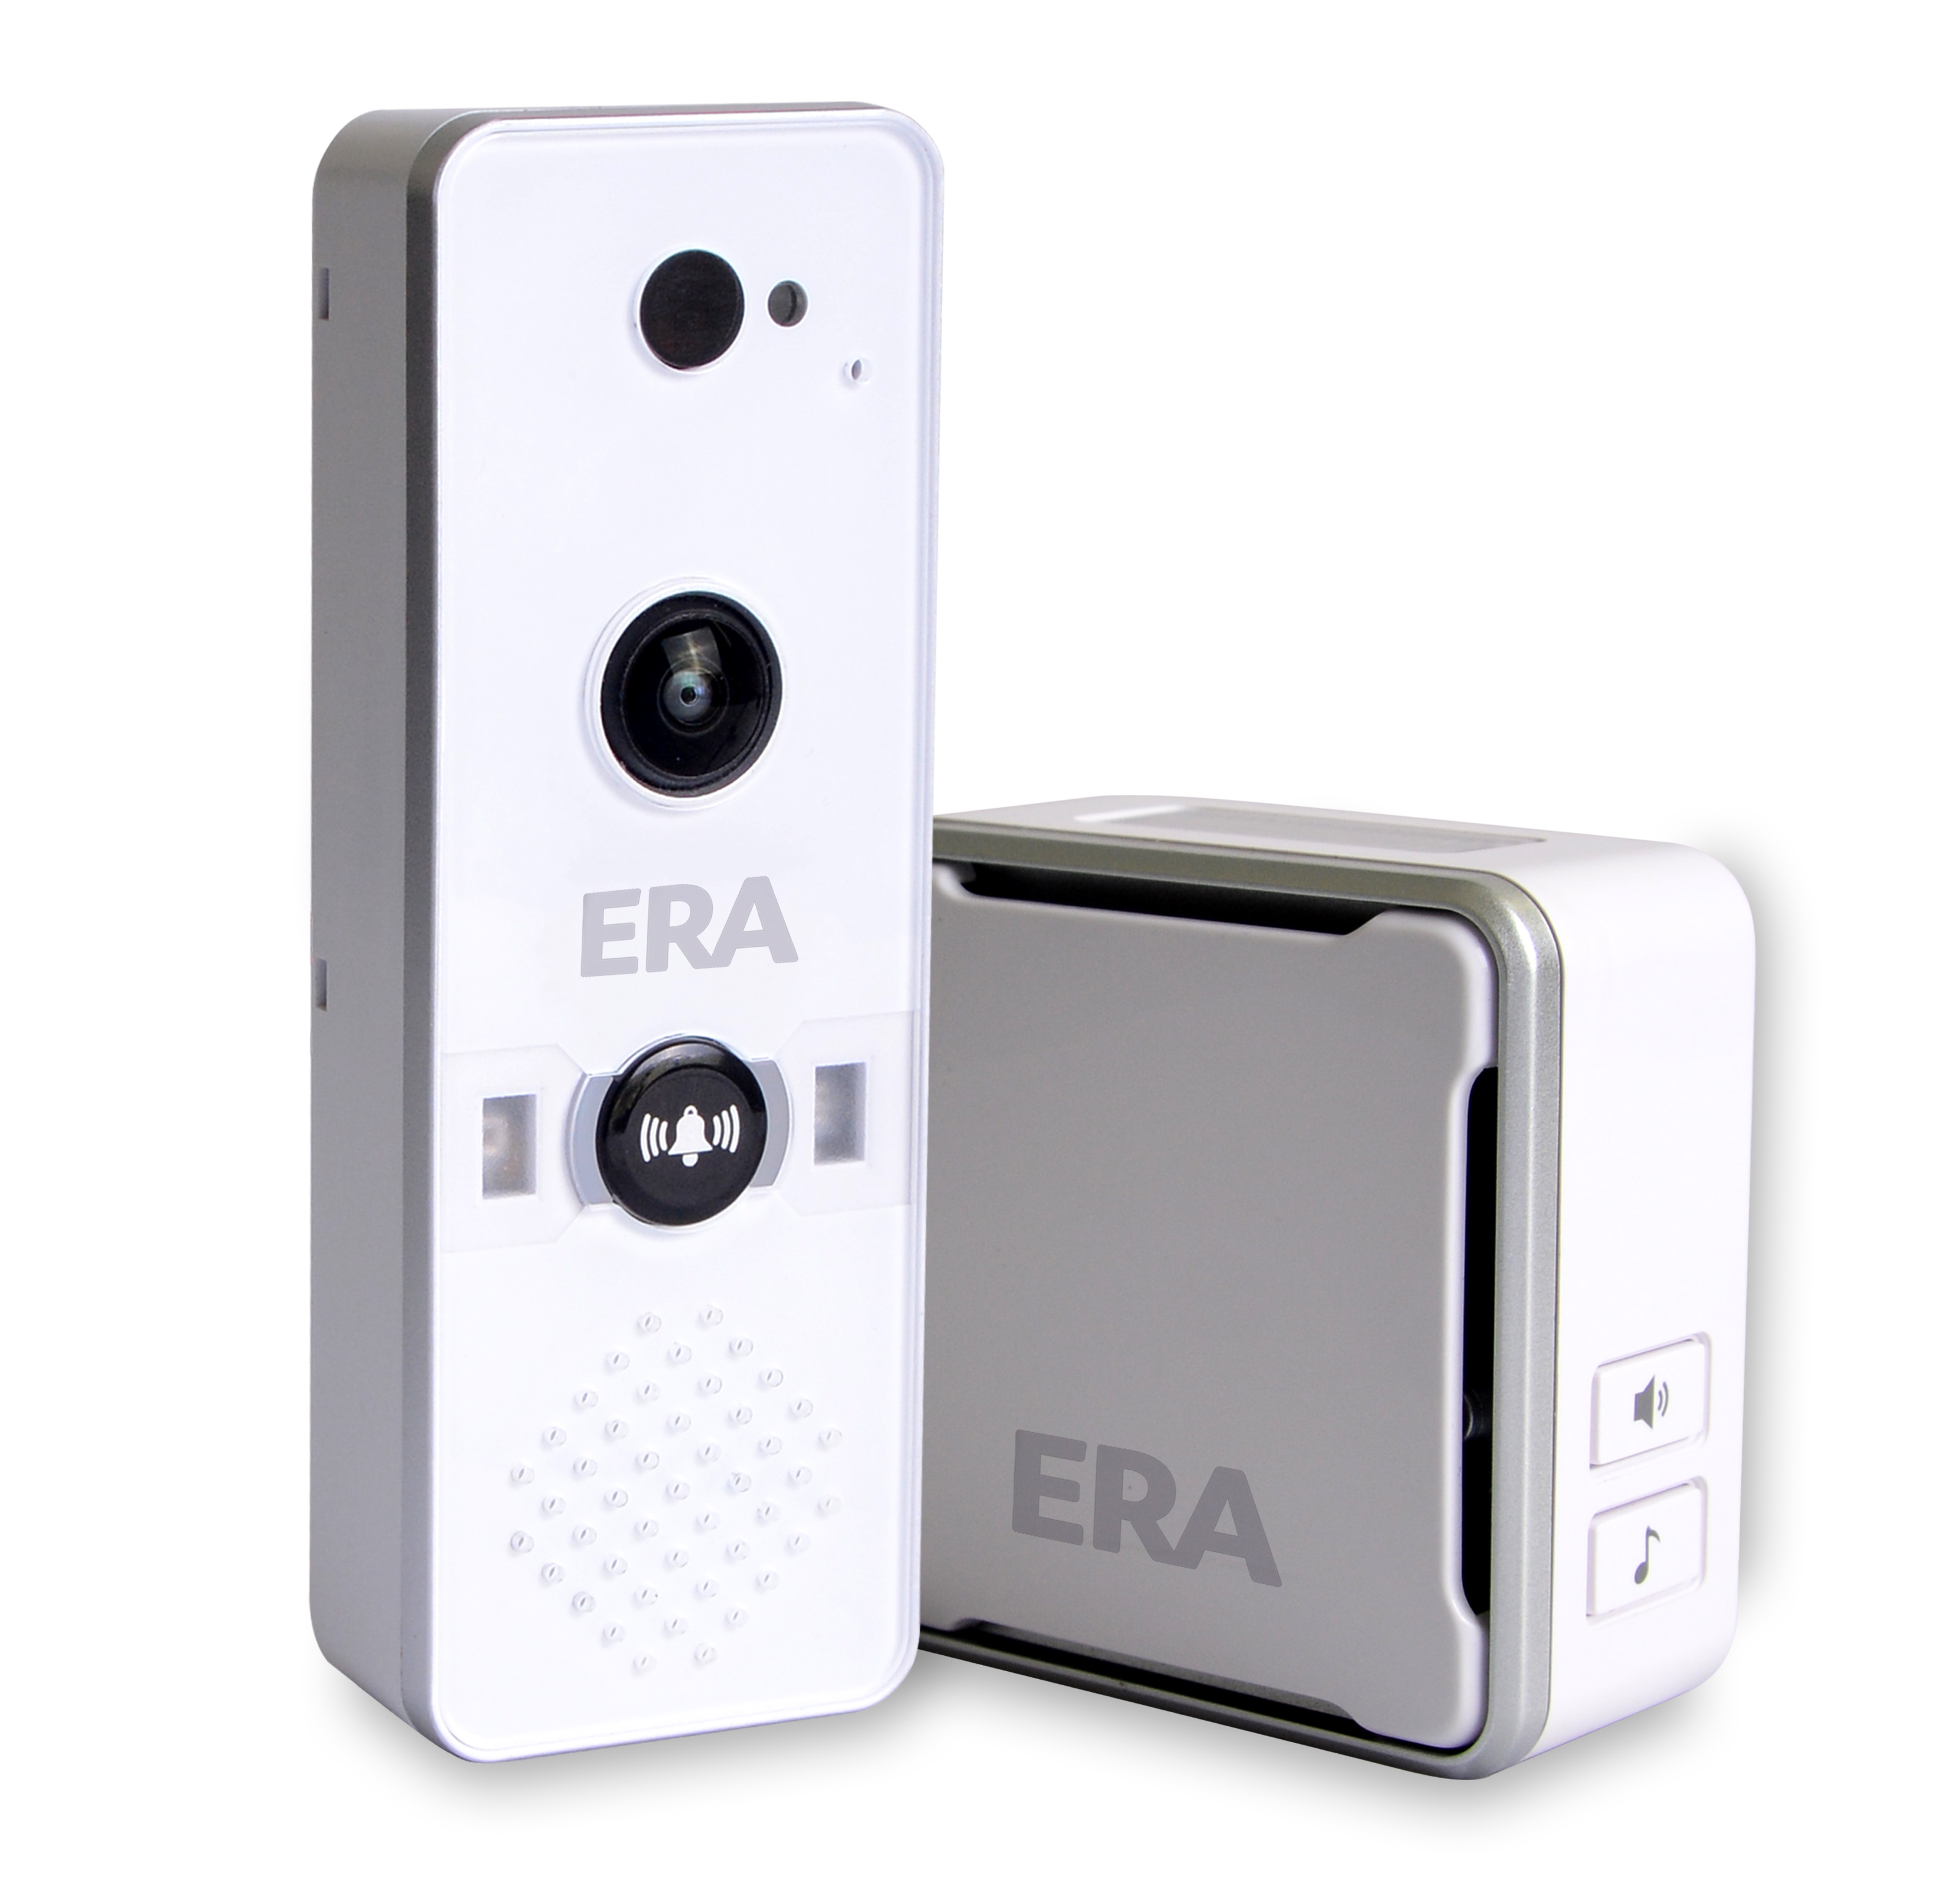 24 Hour Locksmith Services ERA Home Connected Smartware